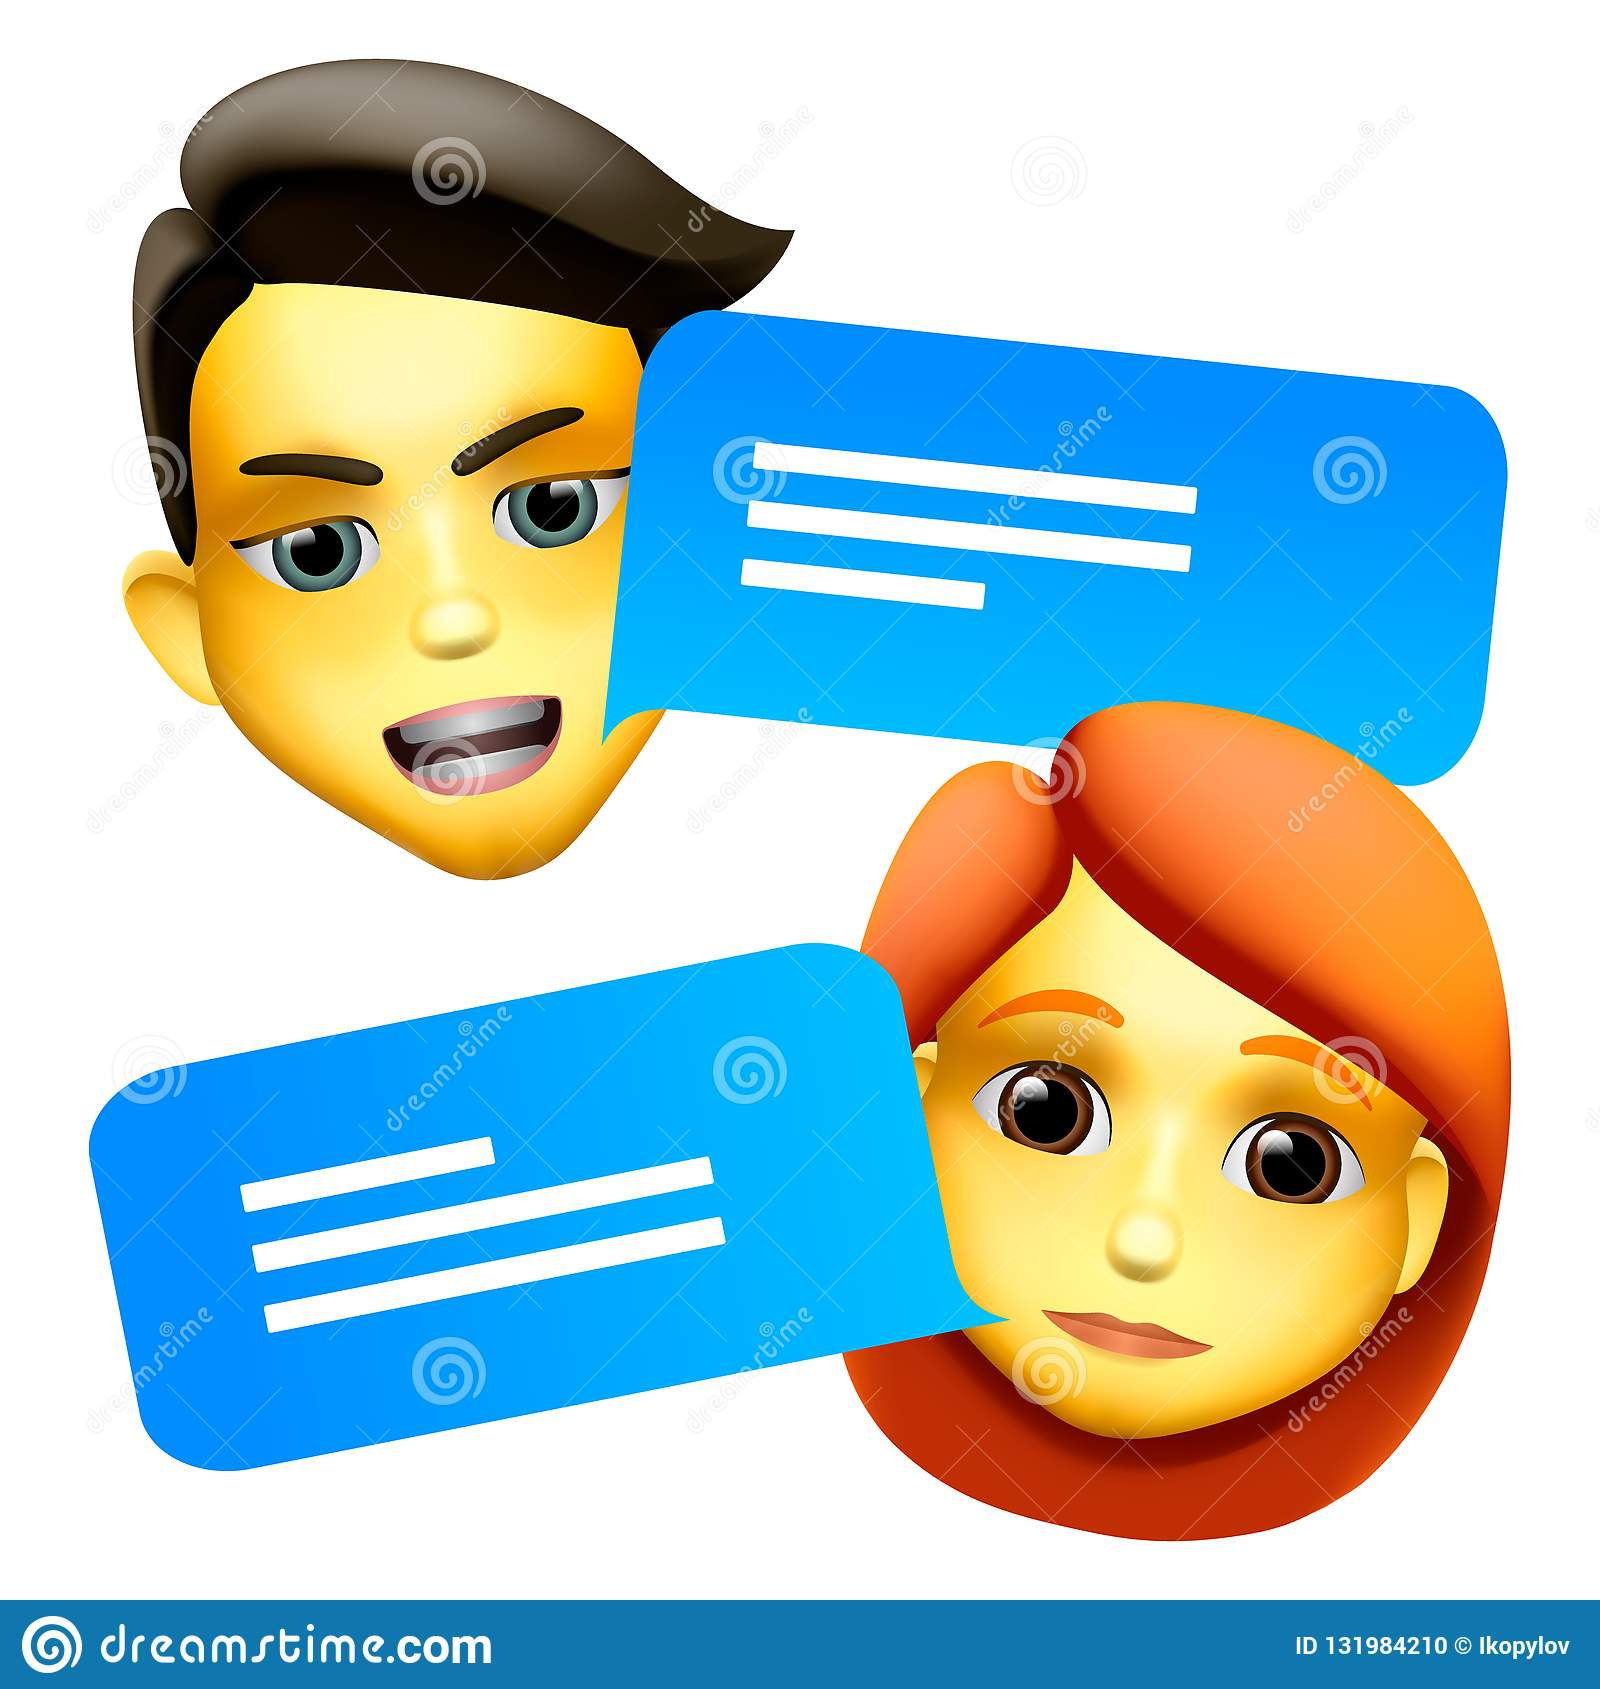 chat bot man and woman emoji concept modern style cartoon character